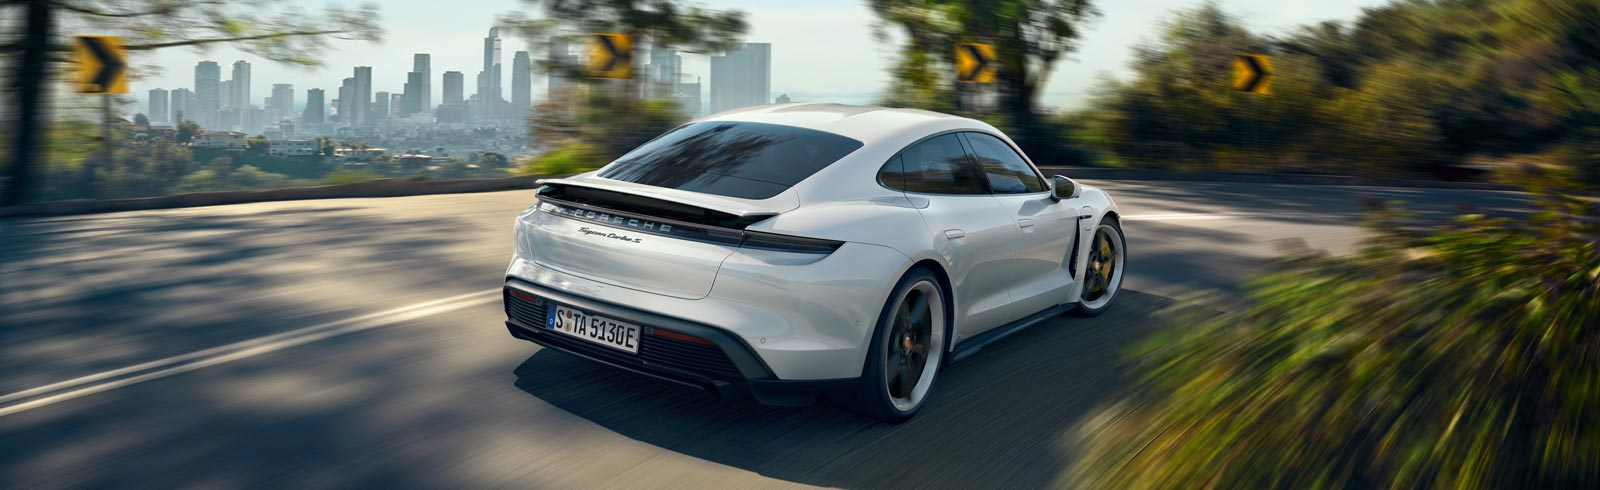 Porsche has 10,000 sale contracts for the Taycan as part of more than 30,000 reservations